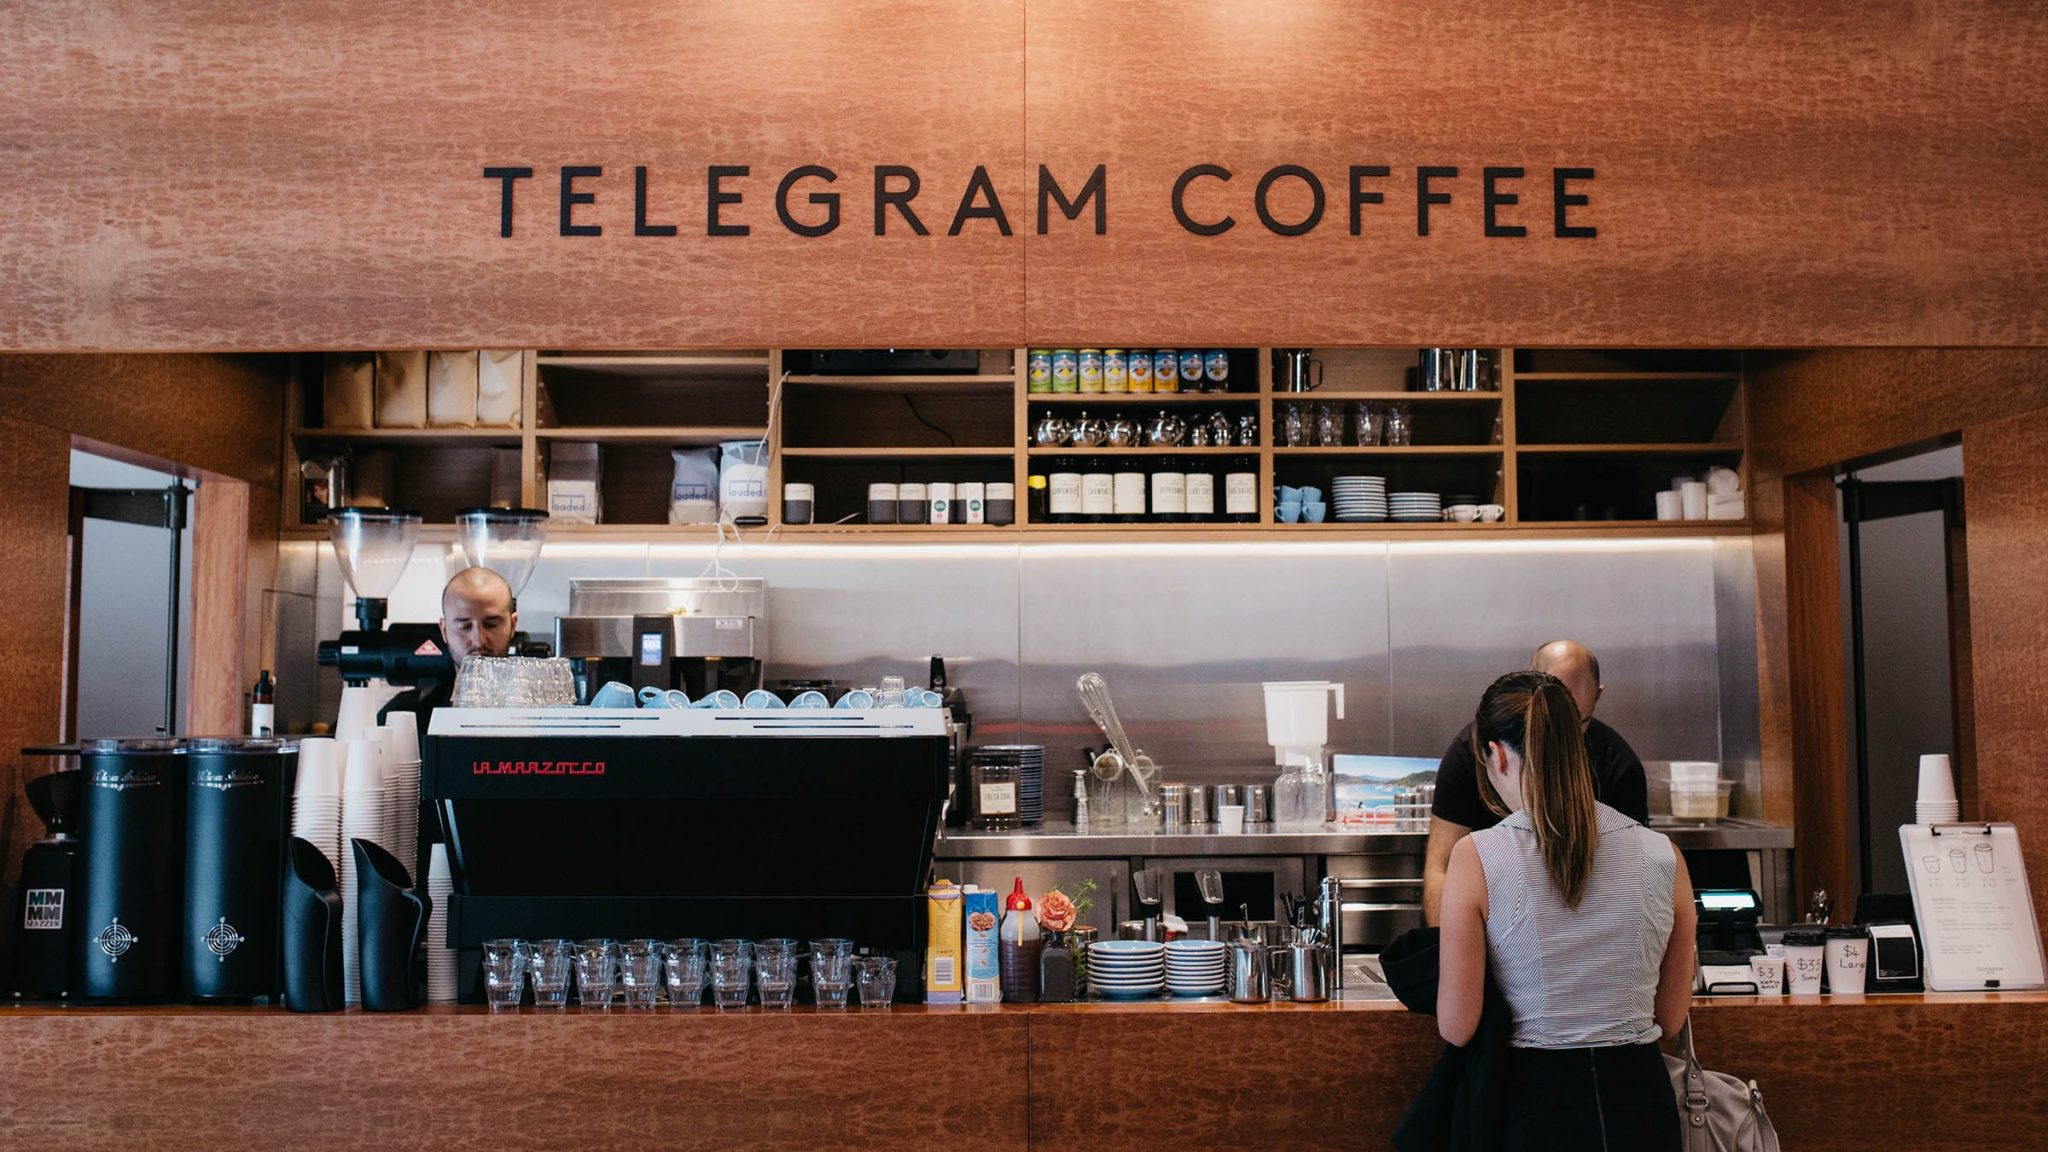 Telegram Coffee